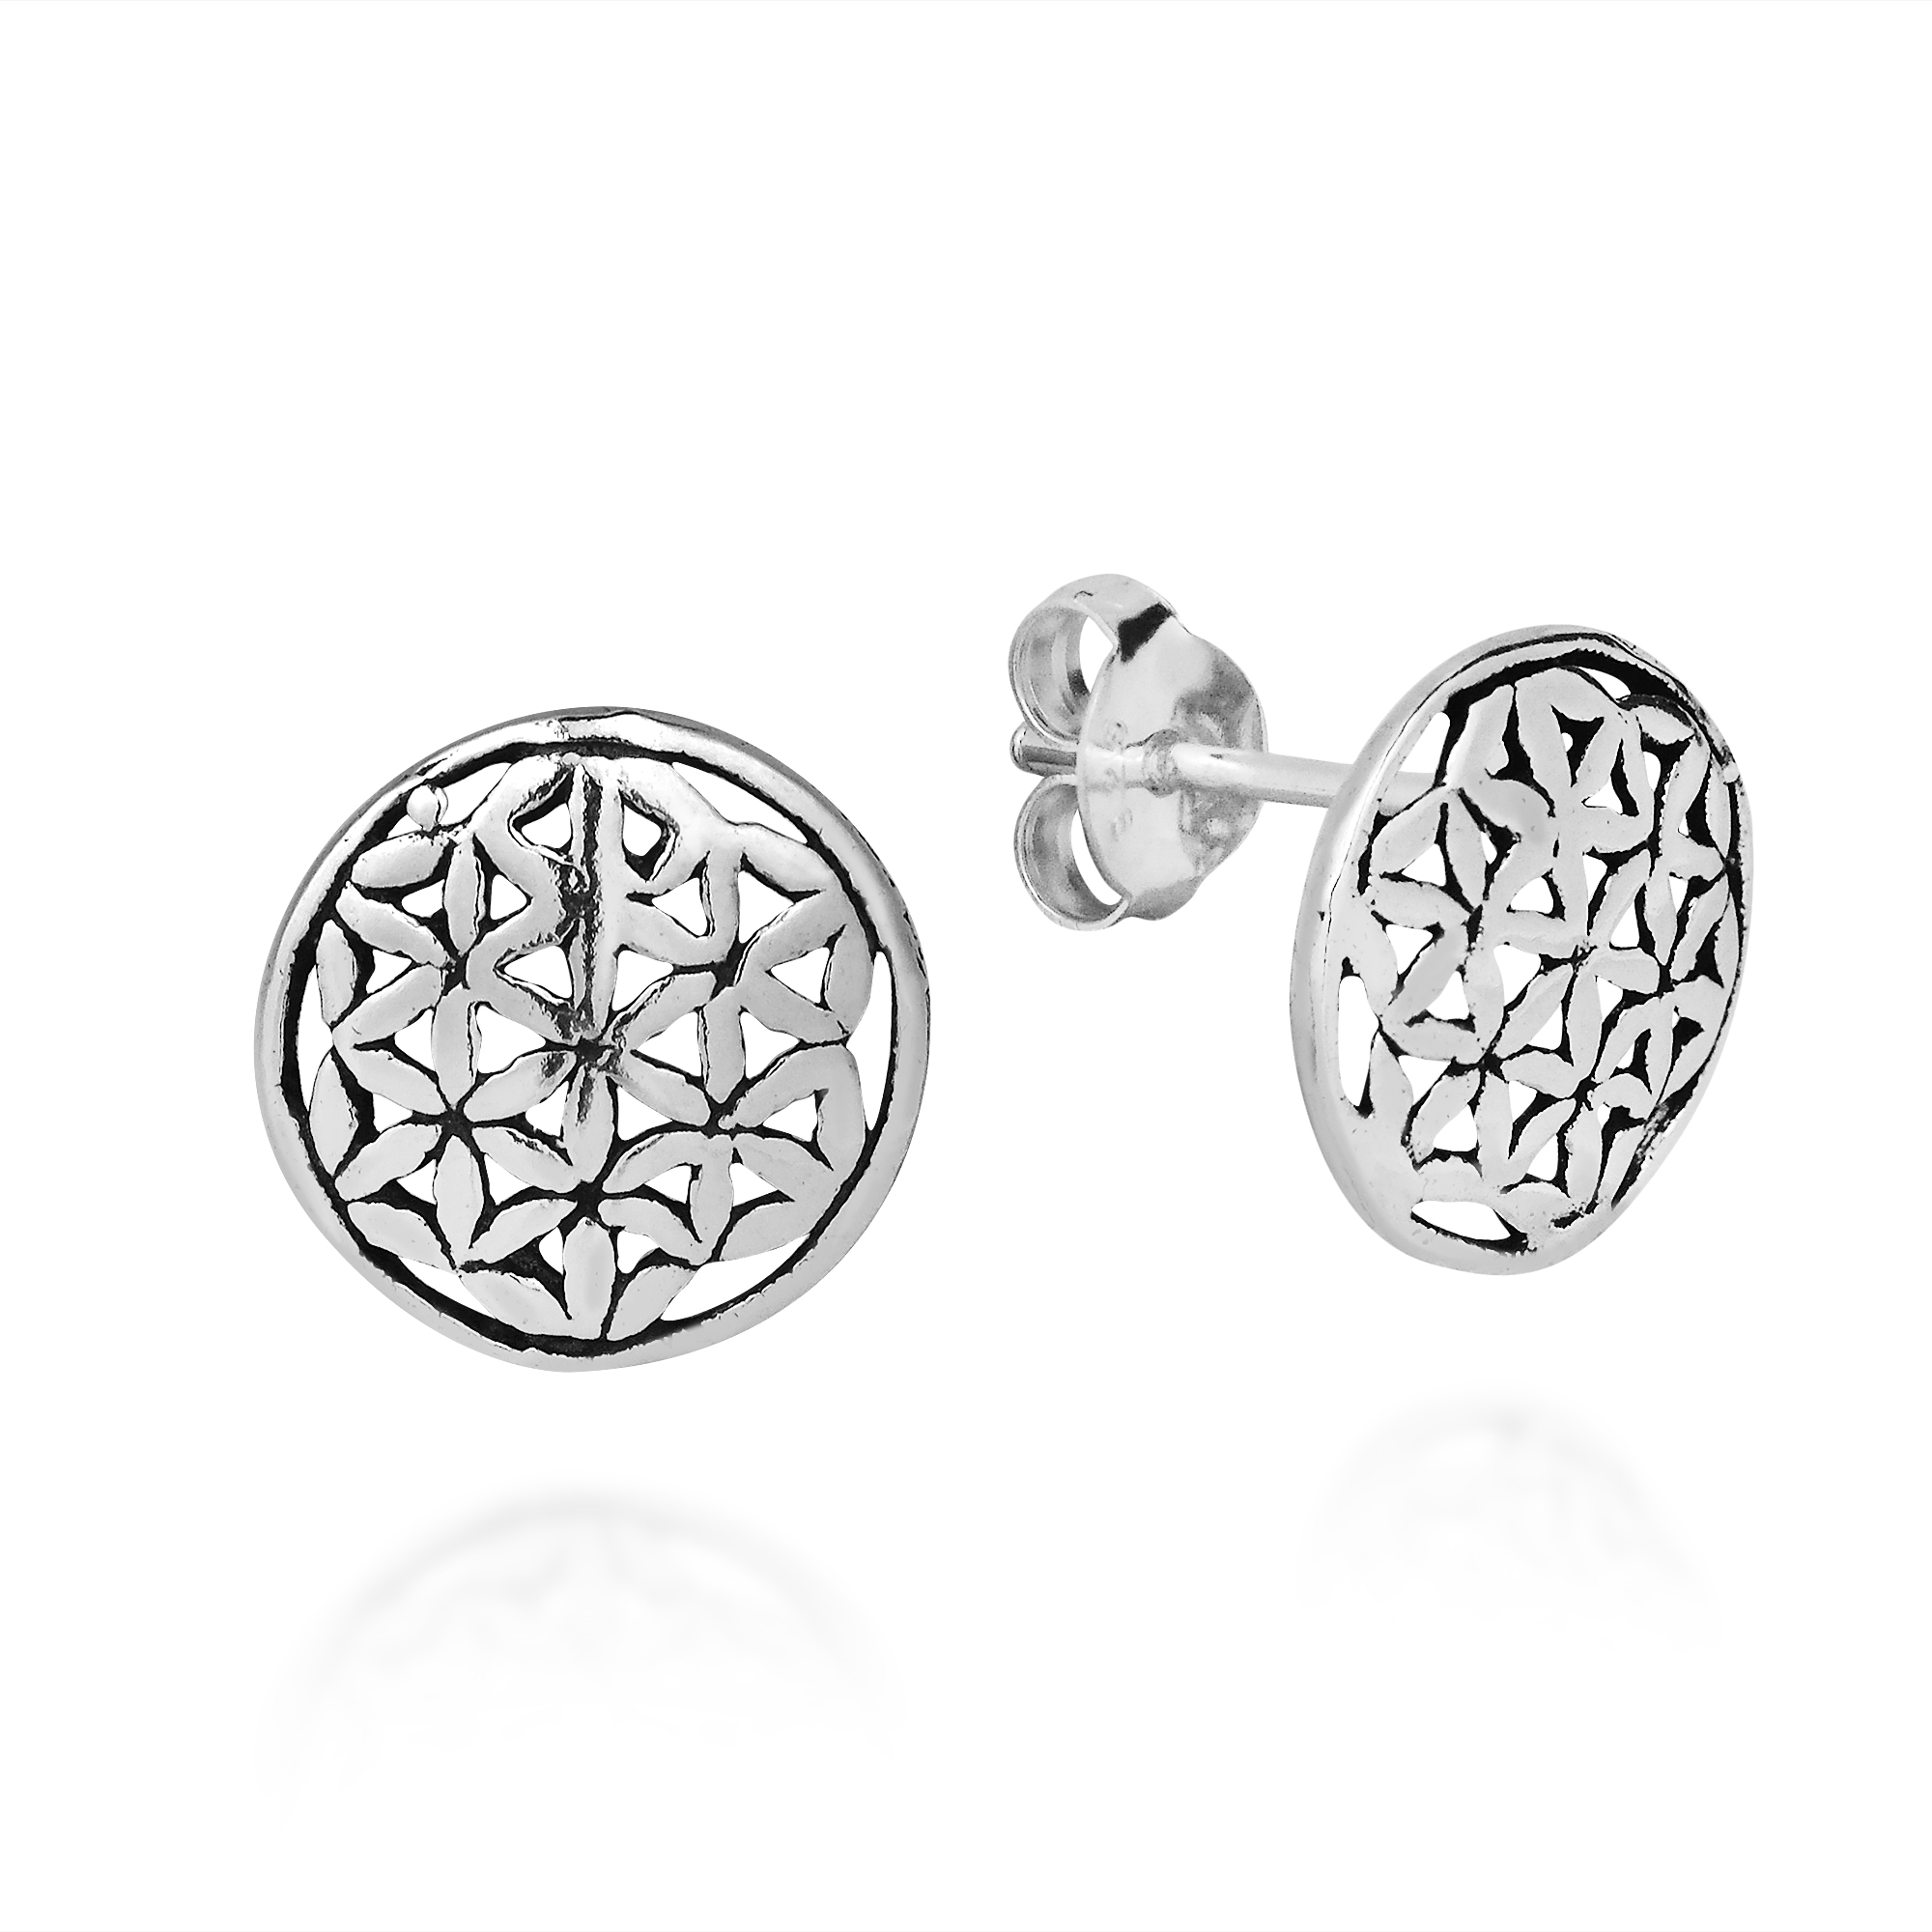 Silver Stud Post Earrings Product